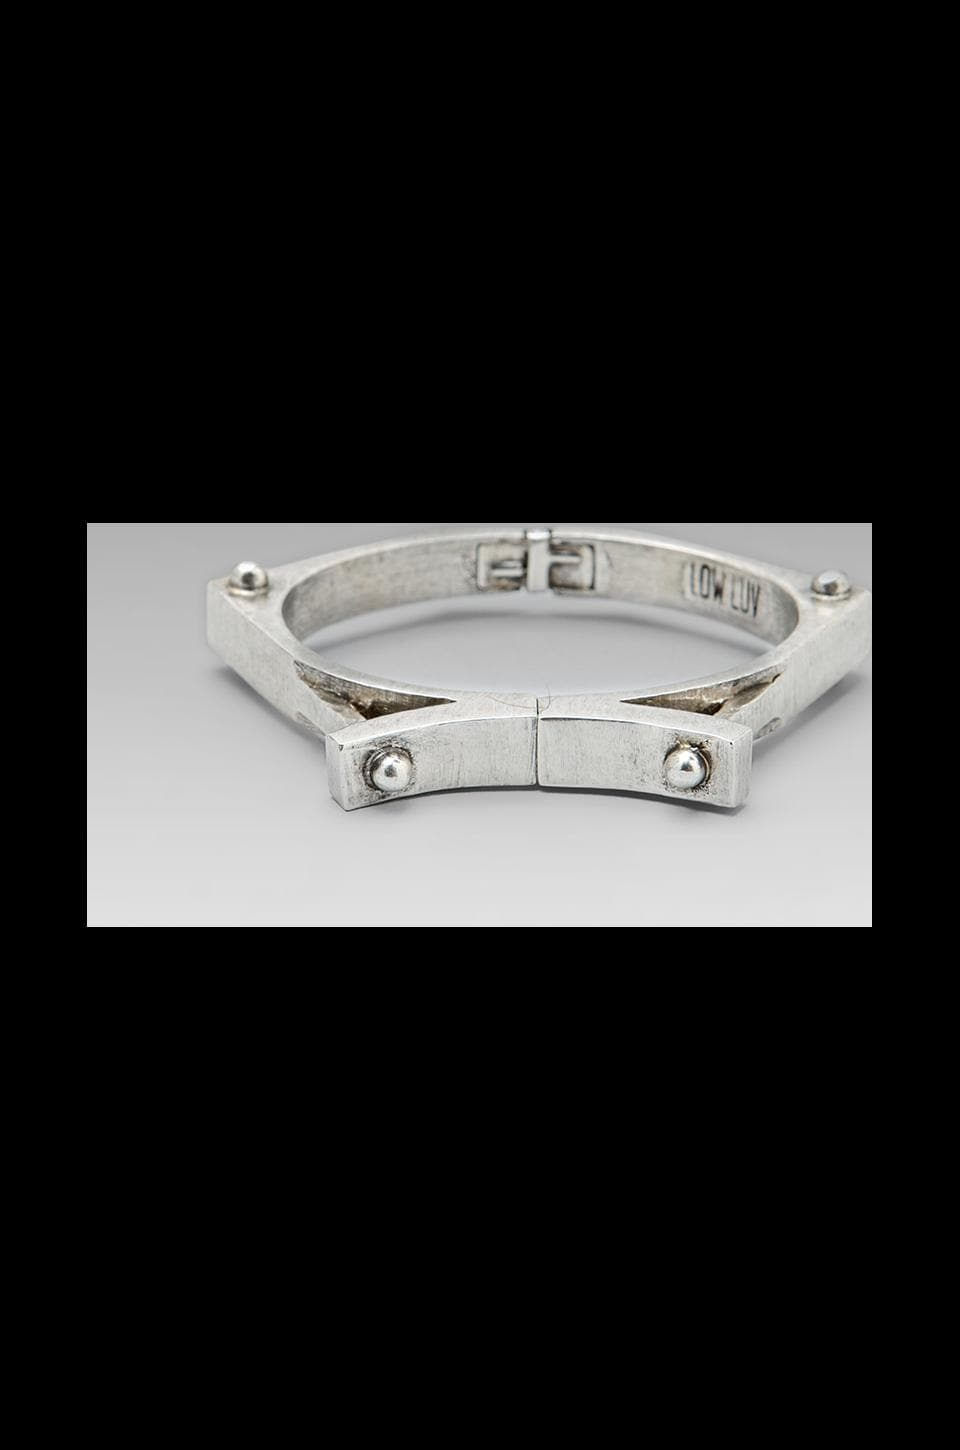 Low Luv x Erin Wasson Atlantis Architectural Magnetic Bangle in Silver